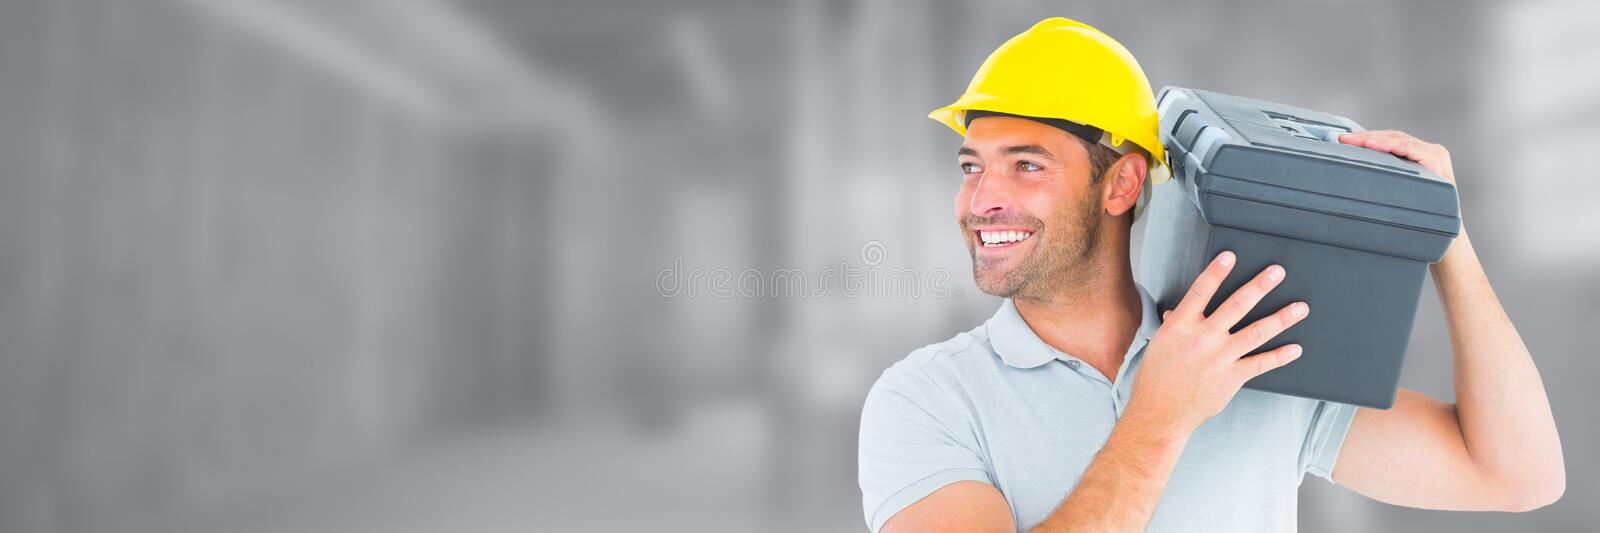 Construction Worker on building site holding toolbox royalty free stock photography